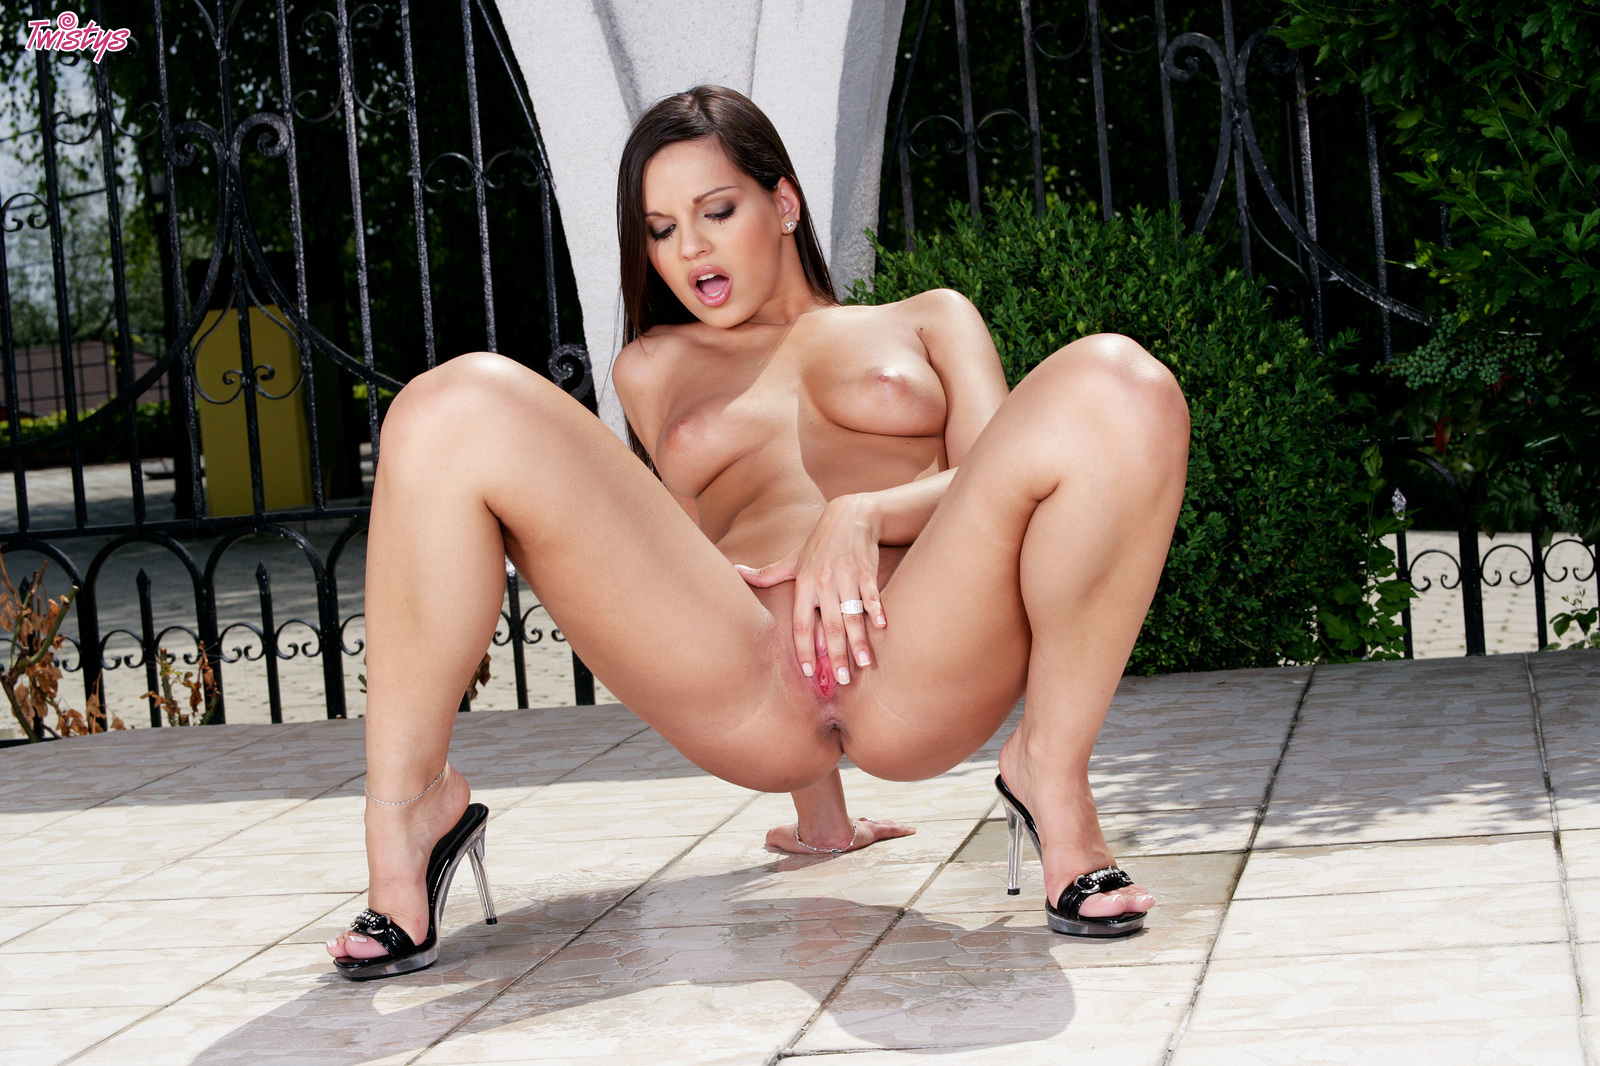 Stiletto heels and big boobs are the beginning of this brunette, spreading pussy for pink show